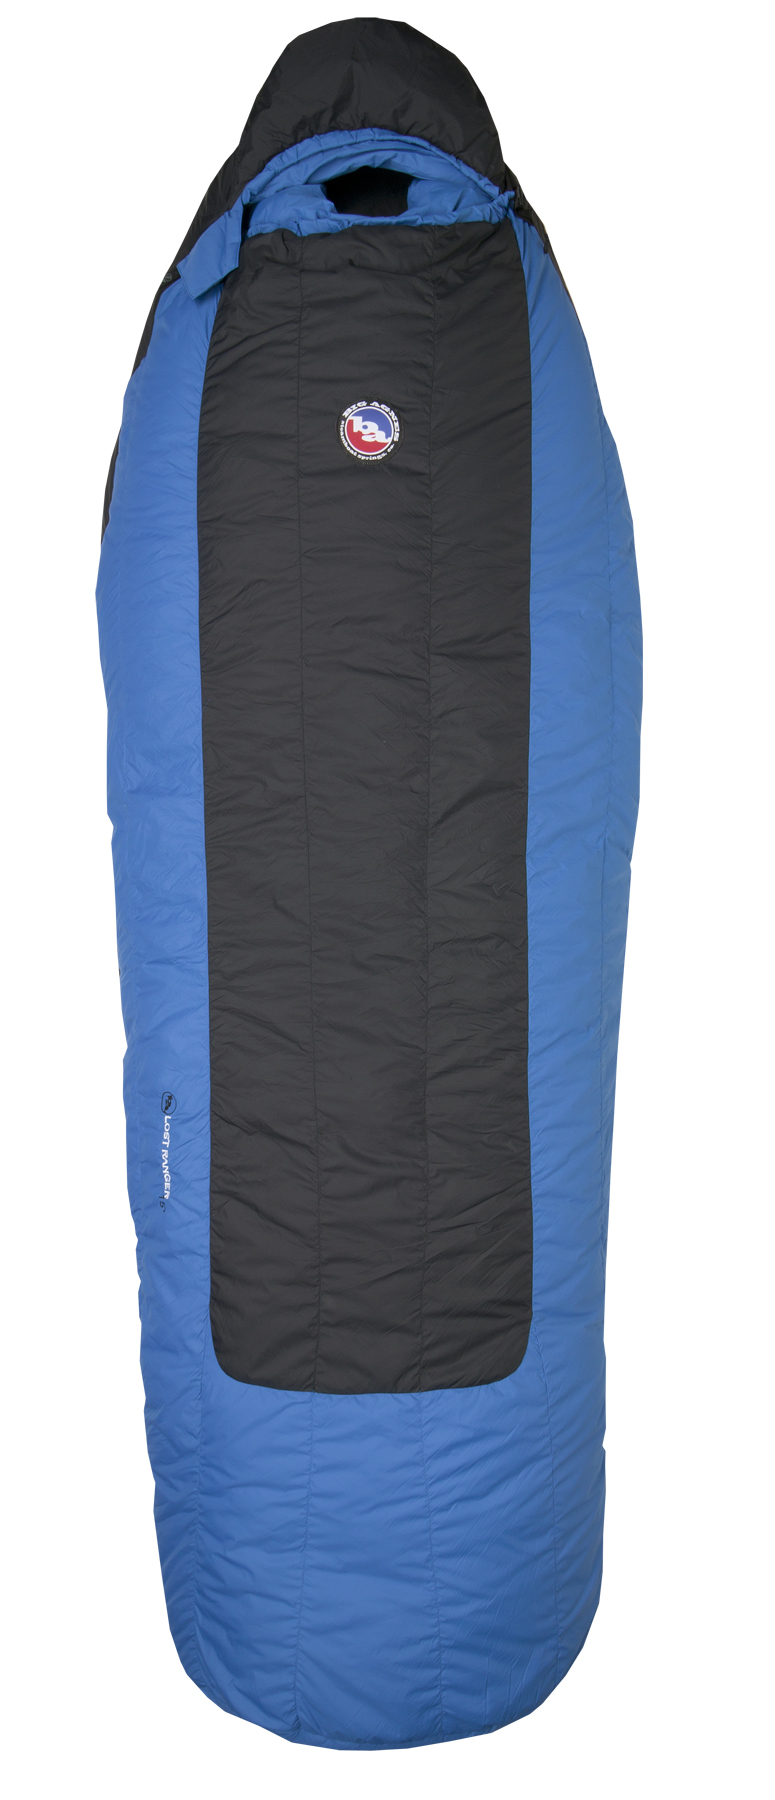 "Camp and Hike Key Features of the Big Agnes Lost Ranger 15 Regular Right Sleeping Bag: Rated to 15 degrees Integrated full pad sleeve. Never roll off your pad again Rectangular shape offers more room in foot box and shoulders Cotton storage sack & nylon stuff sack included Built in pillow pocket holds a fleece or Big Agnes pillow Interior fabric loops for sleeping bag liners 70"" YKK #8 zipper. Mate together our left and right zip bags with same size zipper No-draft collar seals around neck to keep cold air from sneaking in No-draft wedge insulates the connection between the bag and pad No-draft zipper tube insulates along the length of the zipper Shell fabric: Down proof, nylon microfiber rip-stop. WR surface treatment to repel water Lining: Soft and breathable, down proof nylon microfiber with stain resistant finish Pad sleeve fabric: Nylon rip-stop. WR surface treatment to repel water Flow Construction: Insotect Flow is a flow-optimized insulation system that delivers uniform heat distribution and natural body contouring through its revolutionary baffle design. Flow Construction eliminates lateral and vertical down shifting by using vertical chambers with Flow Gates to regulate fill positioning and density. Strategically placed Flow Gates minimize vertical down shifting while vertical chambers minimize lateral shifting. With continuous vertical Flow chambers in place of traditional side seams, Flow bags eliminate potential cold spots which can occur with side seams. Vertical baffles now flow with your body for more rapid and uniform body heat distribution. LEFT OR RIGHT ZIPPER? When you are in the bag, on your back, the right zip will be on your right side, left zip on your left side Pad Size 20""x72"" Fill Type 650 fill goose down Fill Weight 14.5oz Bag Weight 2lb 14oz Shoulder Girth 70"" Hip Girth 66"" Foot Girth 54"" Stuff Sack Size M-8""x17.5"" Compressed Bag Size 8""x7.5"" - $161.95"